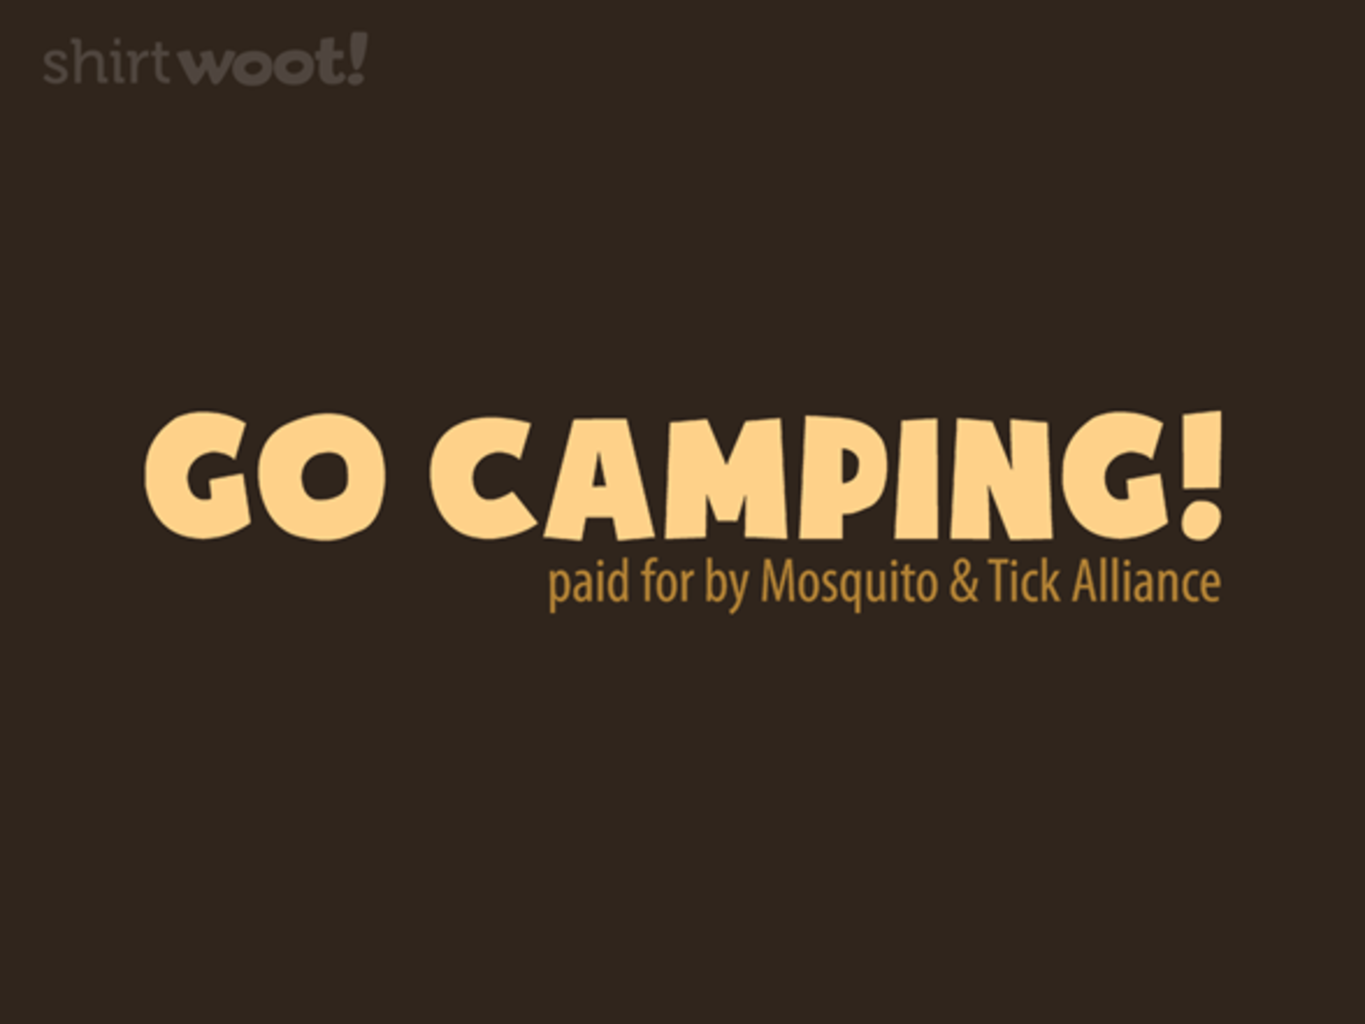 Woot!: Go Camping!